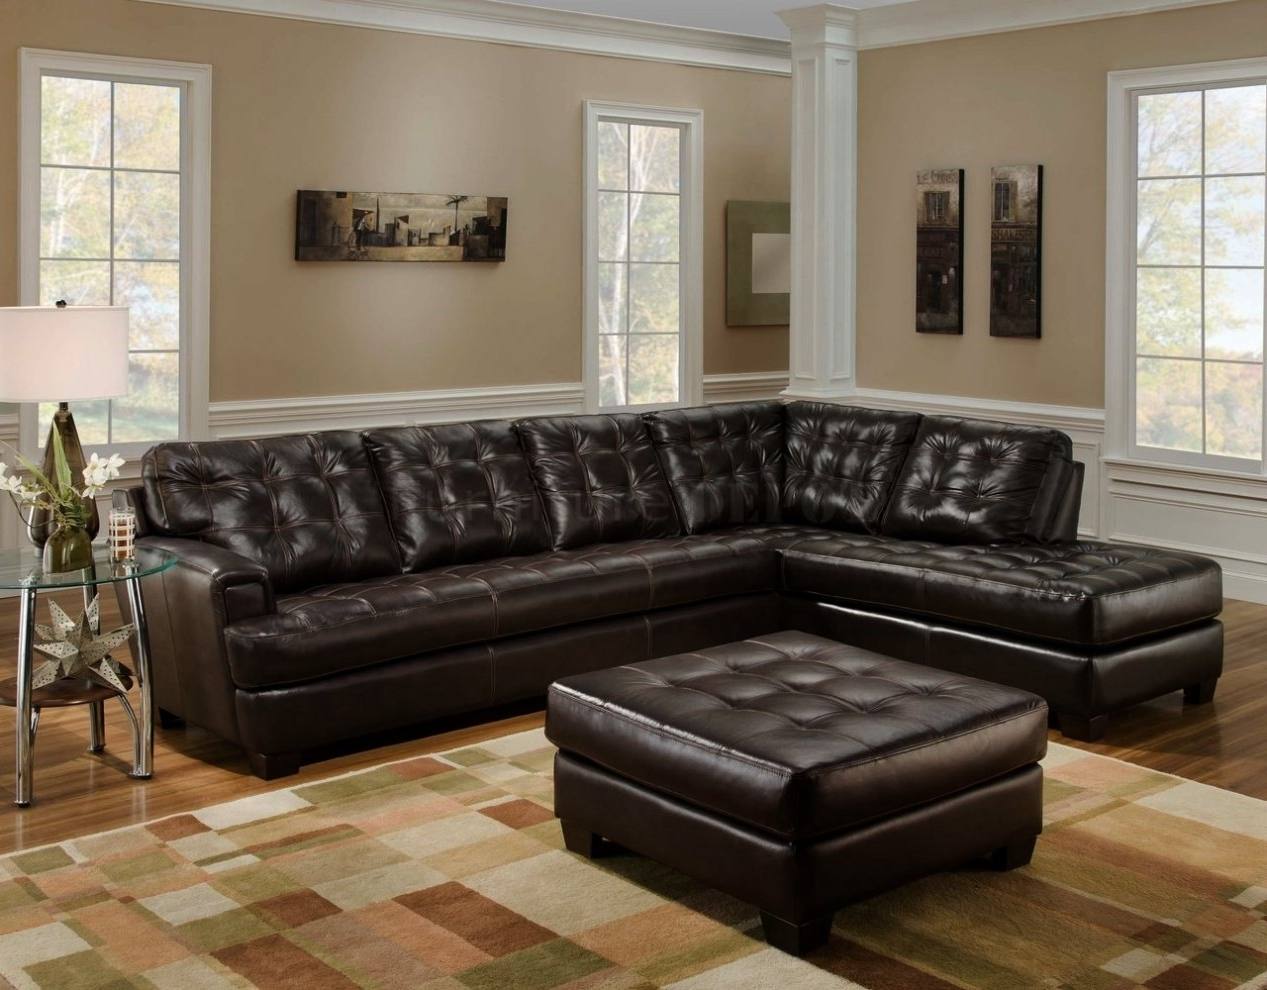 Tufted Sectionals With Chaise Throughout 2018 Dark Brown Leather Tufted Sectional Chaise Lounge Sofa With (View 4 of 15)